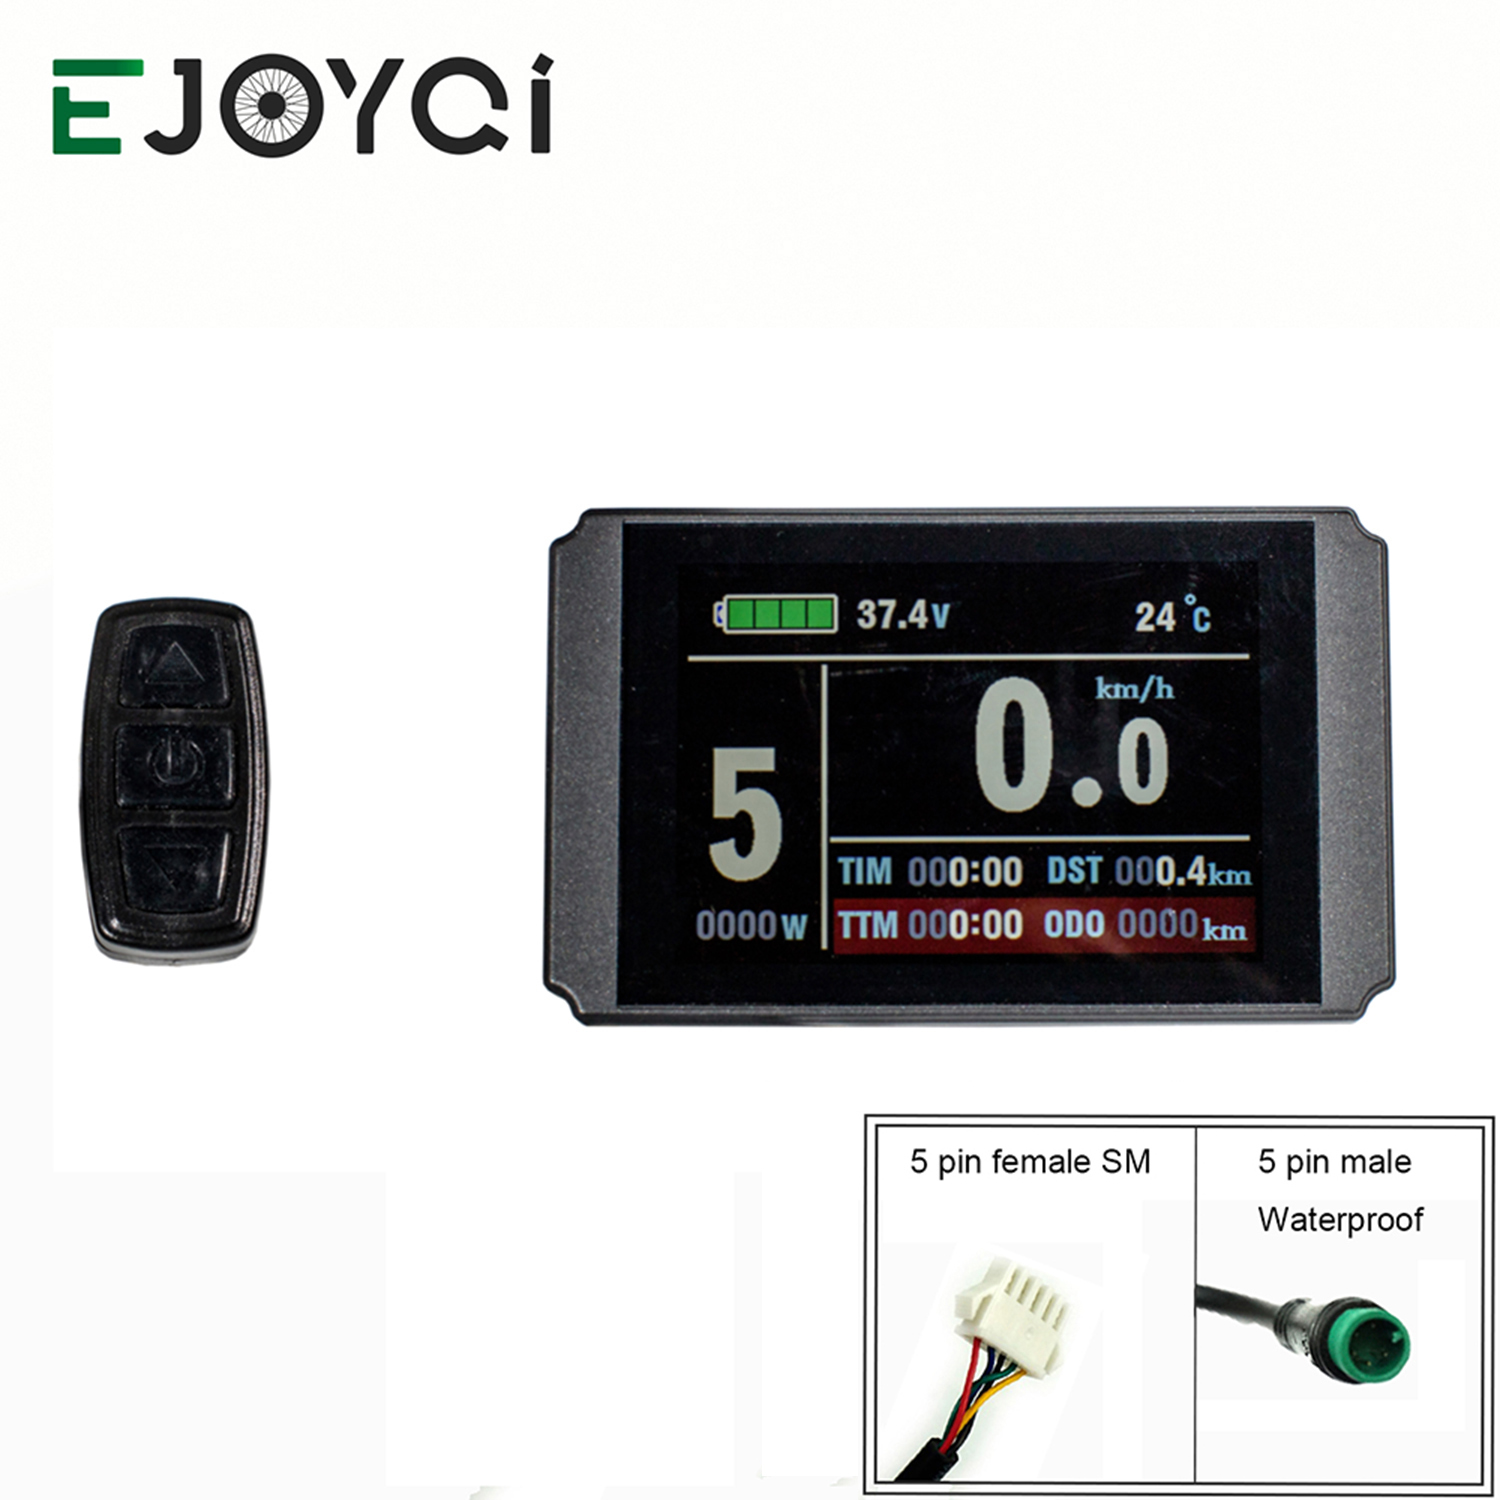 EJOYQI KT Ebike LCD8H Display 24V 36V 48V USB SM Waterproof Connector Electric Bicycle Accessories E-Bike LCD Display(China)